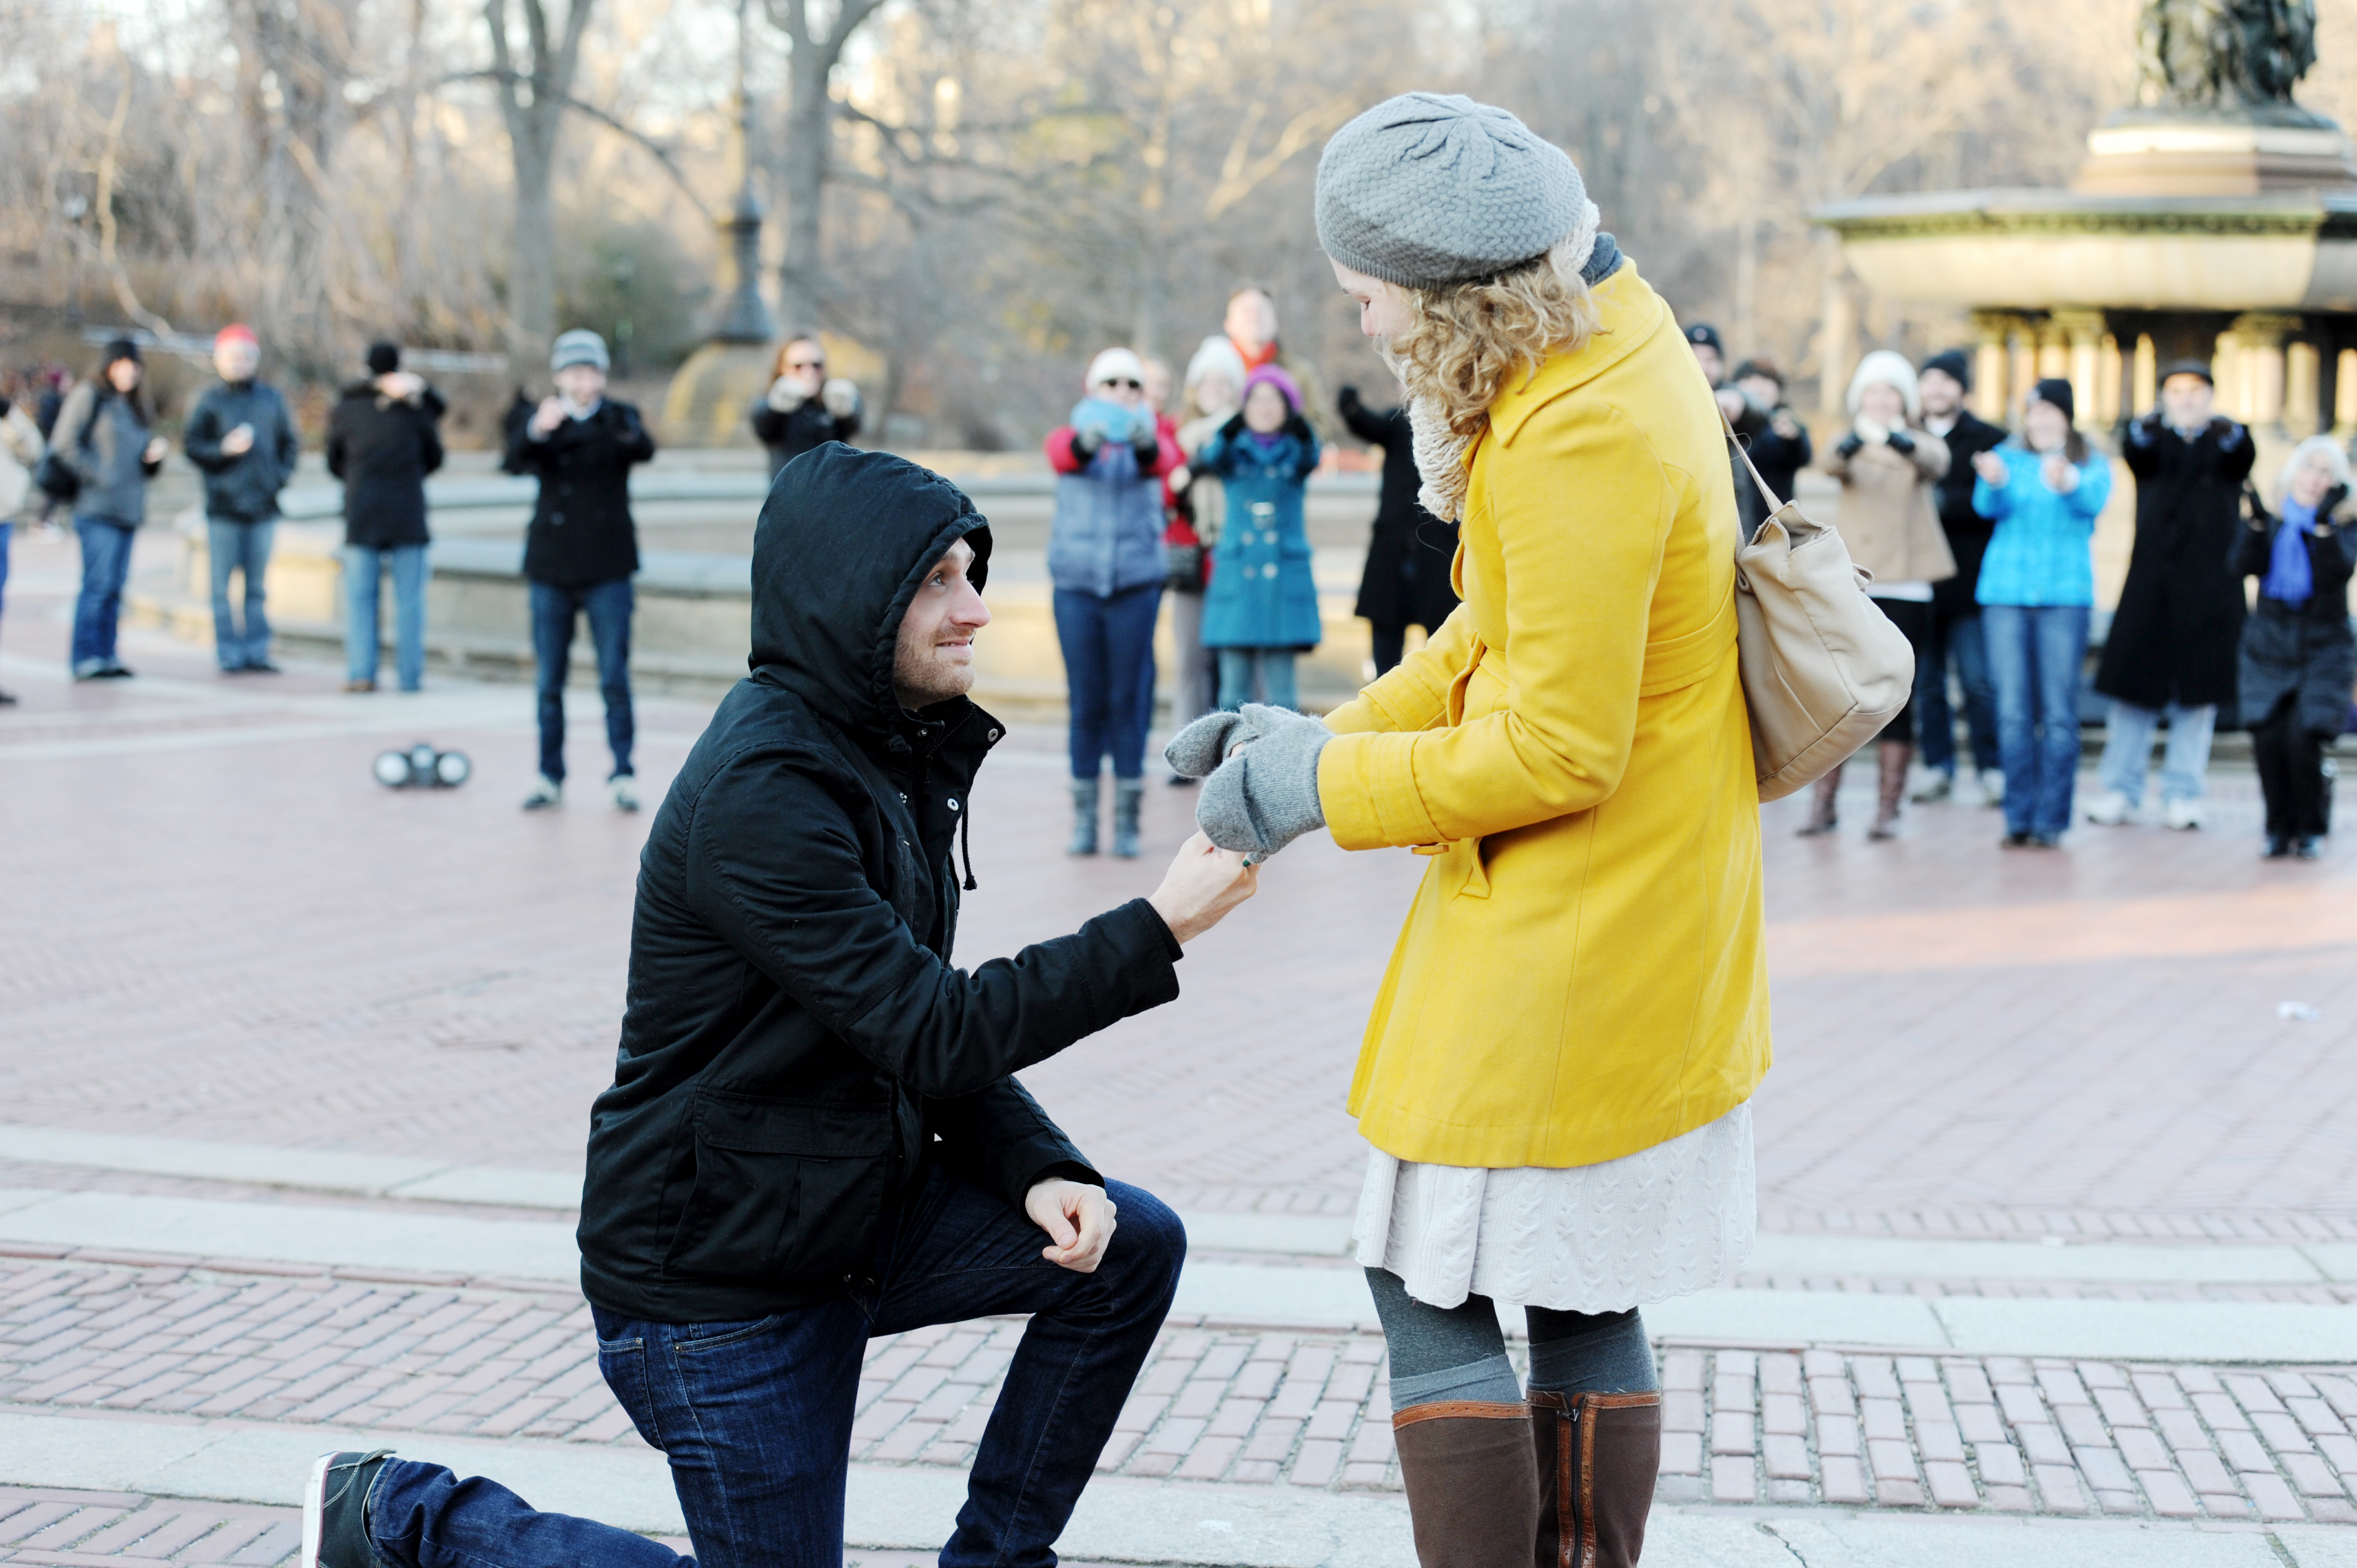 Image 17 of Best Marriage Proposals Ever